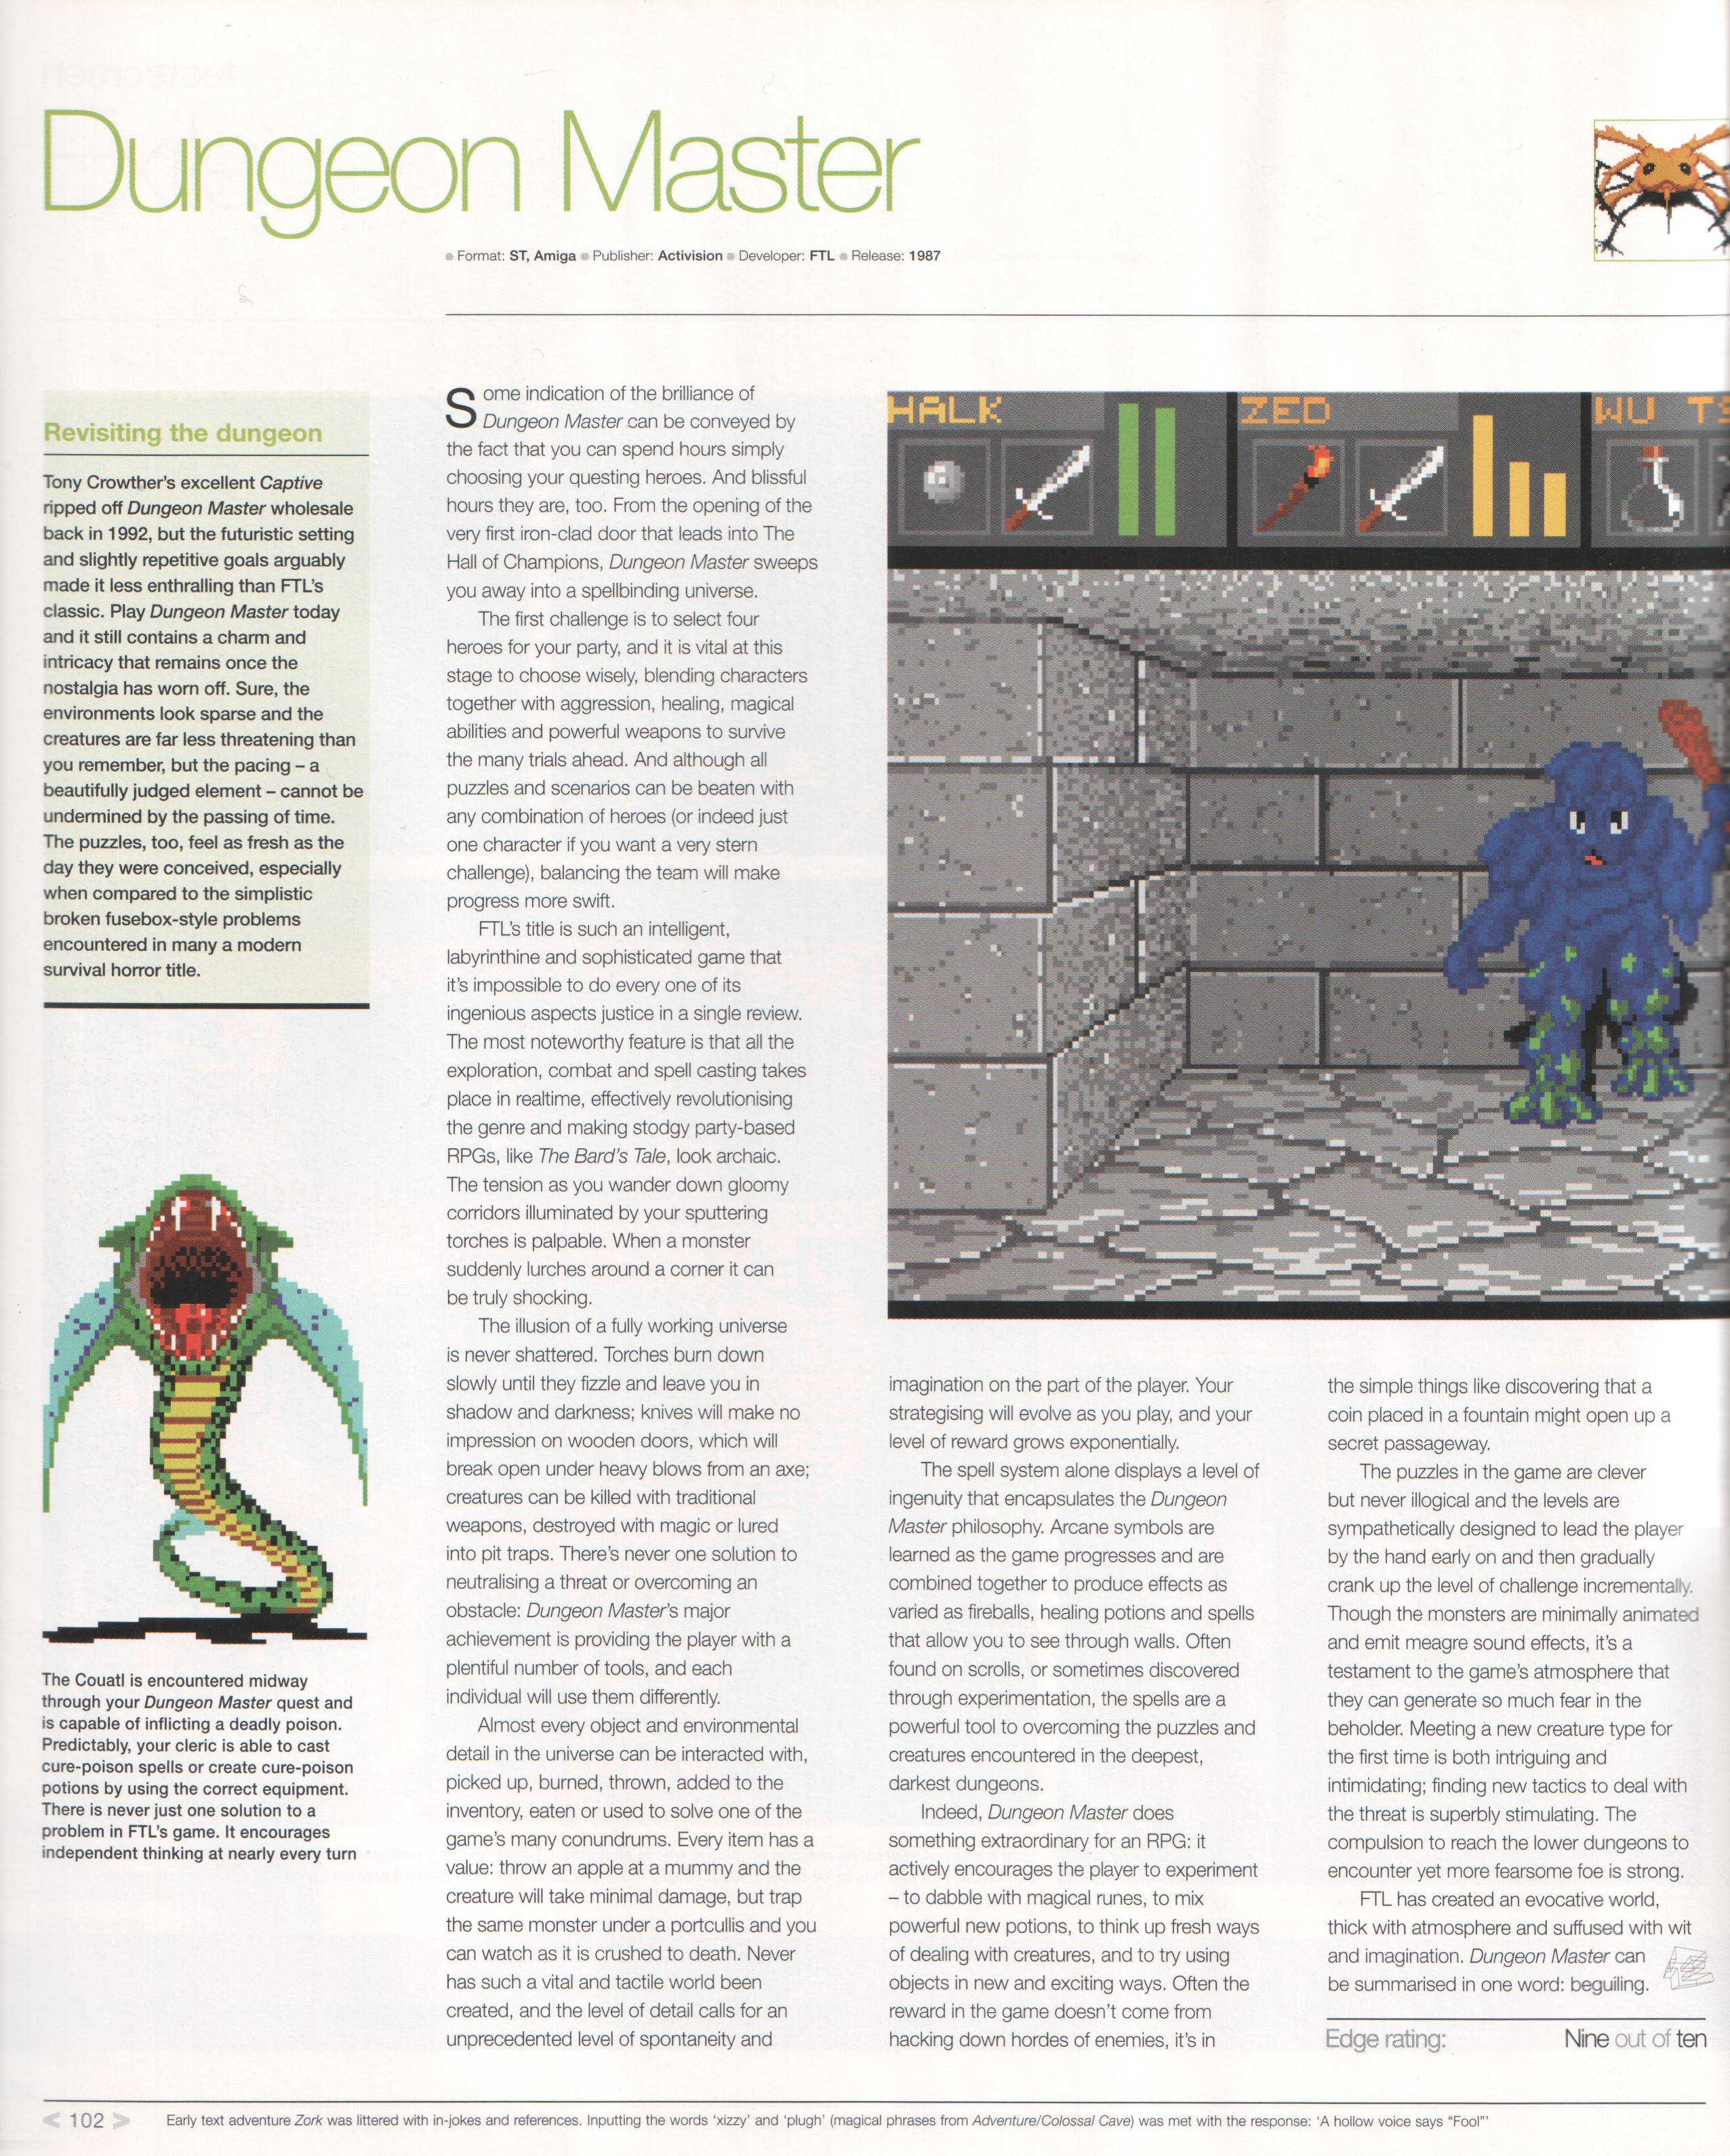 Dungeon Master Review published in British magazine 'Edge Presents Retro The Guide To Classic Videogame Playing And Collecting', December 2002, Page 102